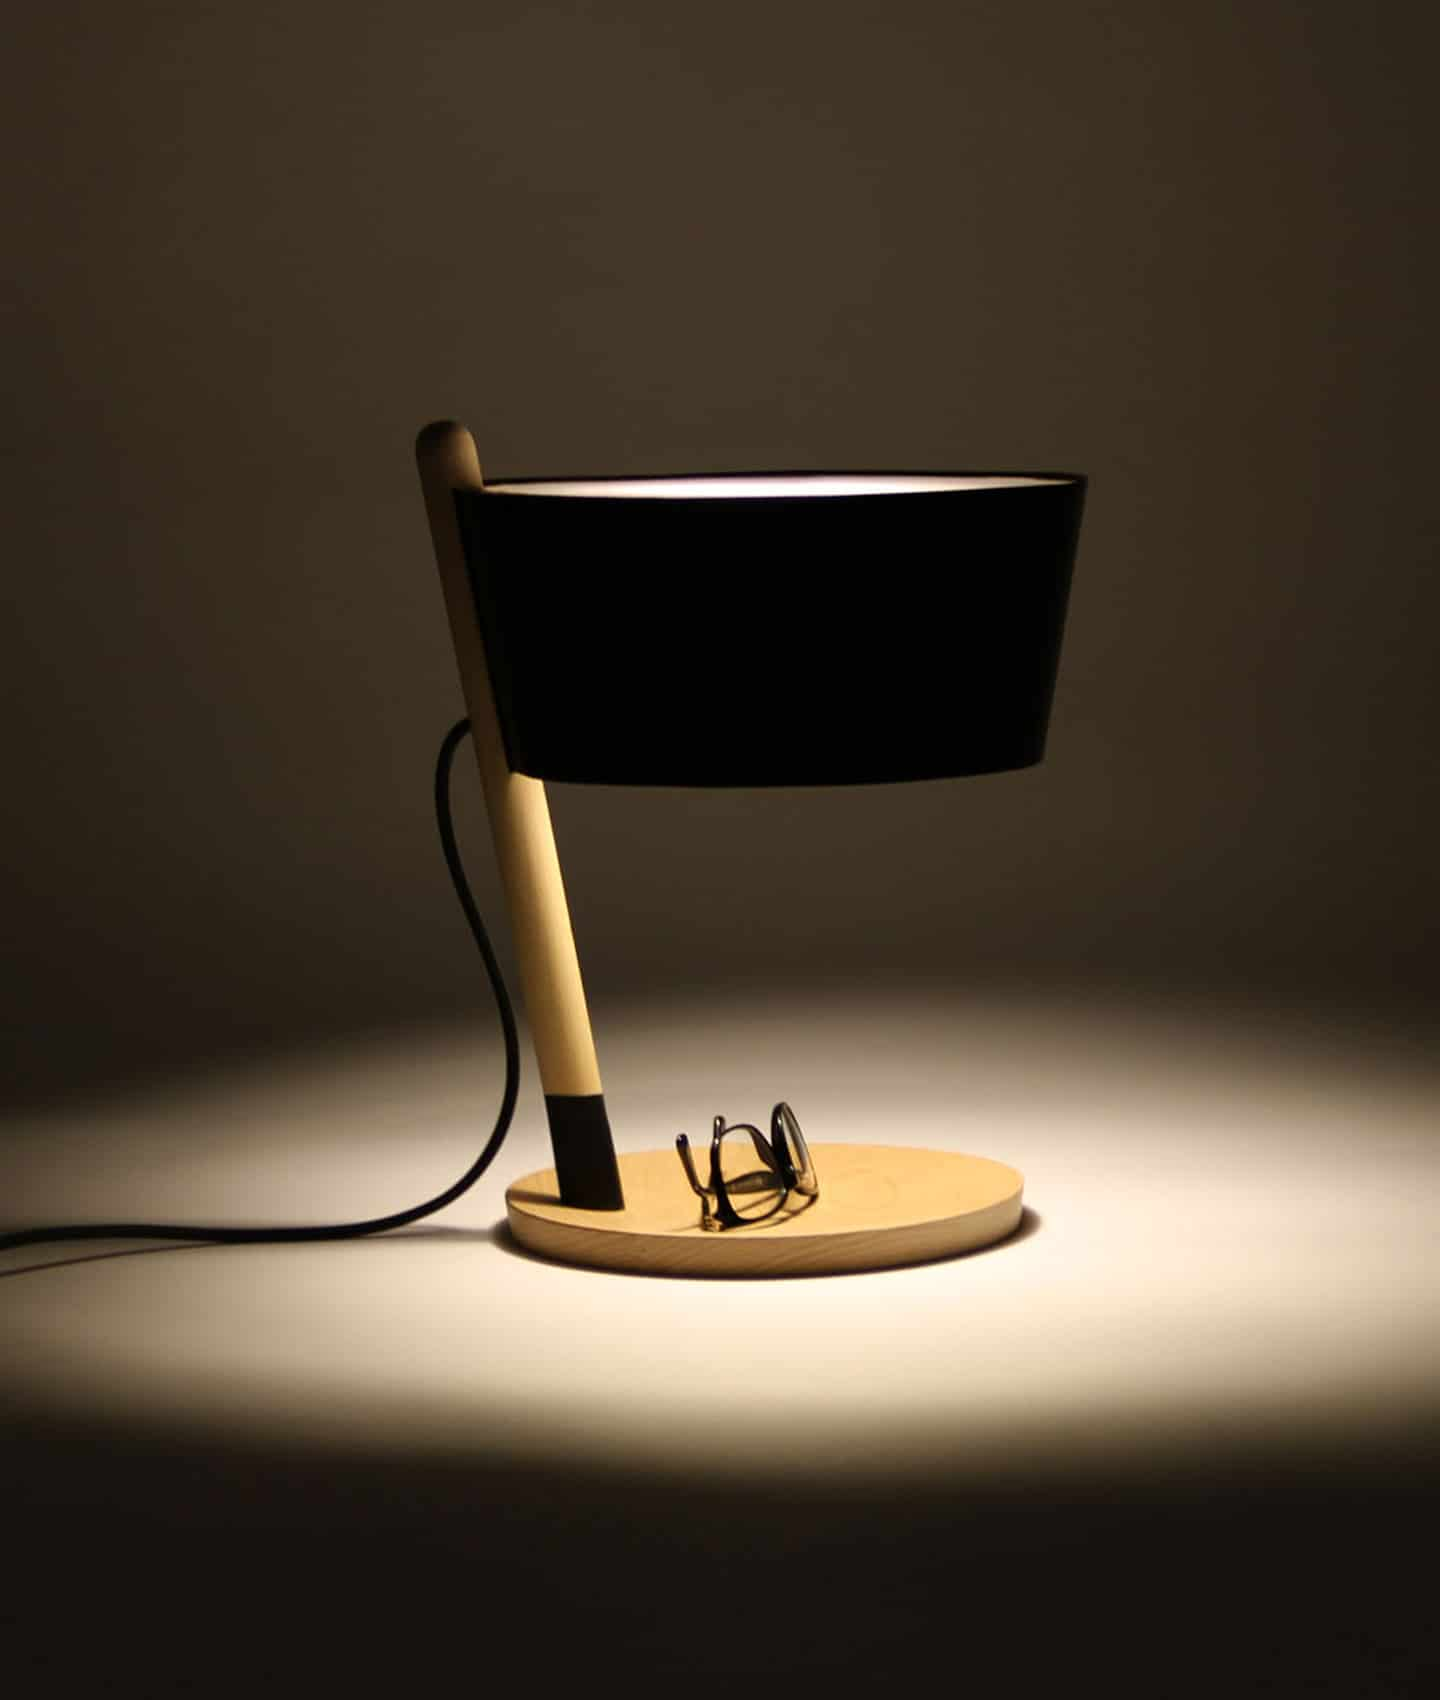 Ka S table desk lamp studio decor